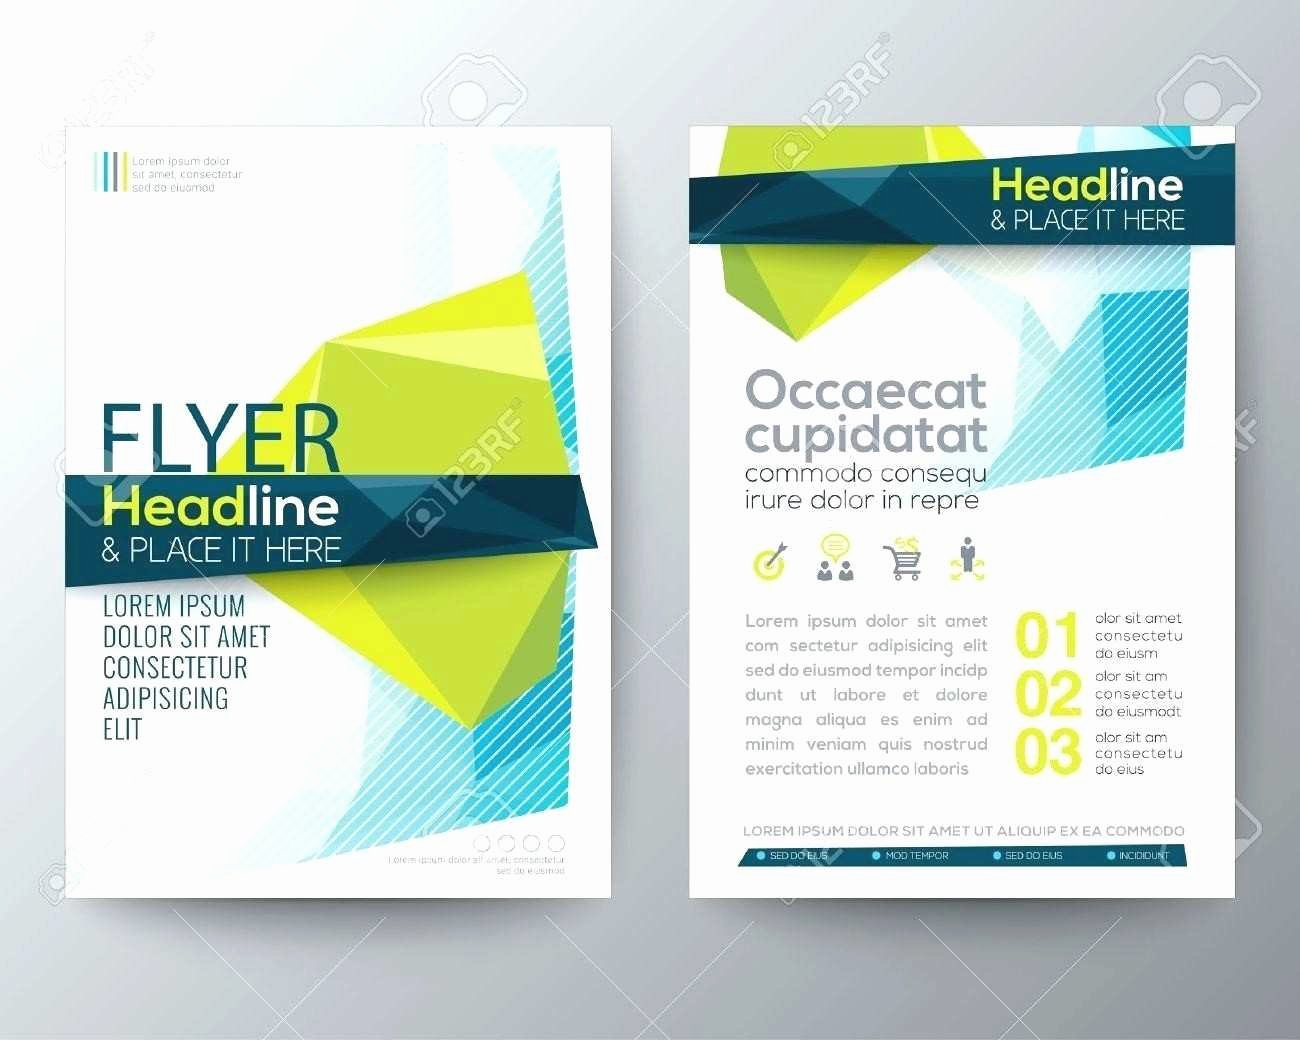 Word Doc Brochure Template Lovely Beautiful Free Editable Funeral Program Template Doc